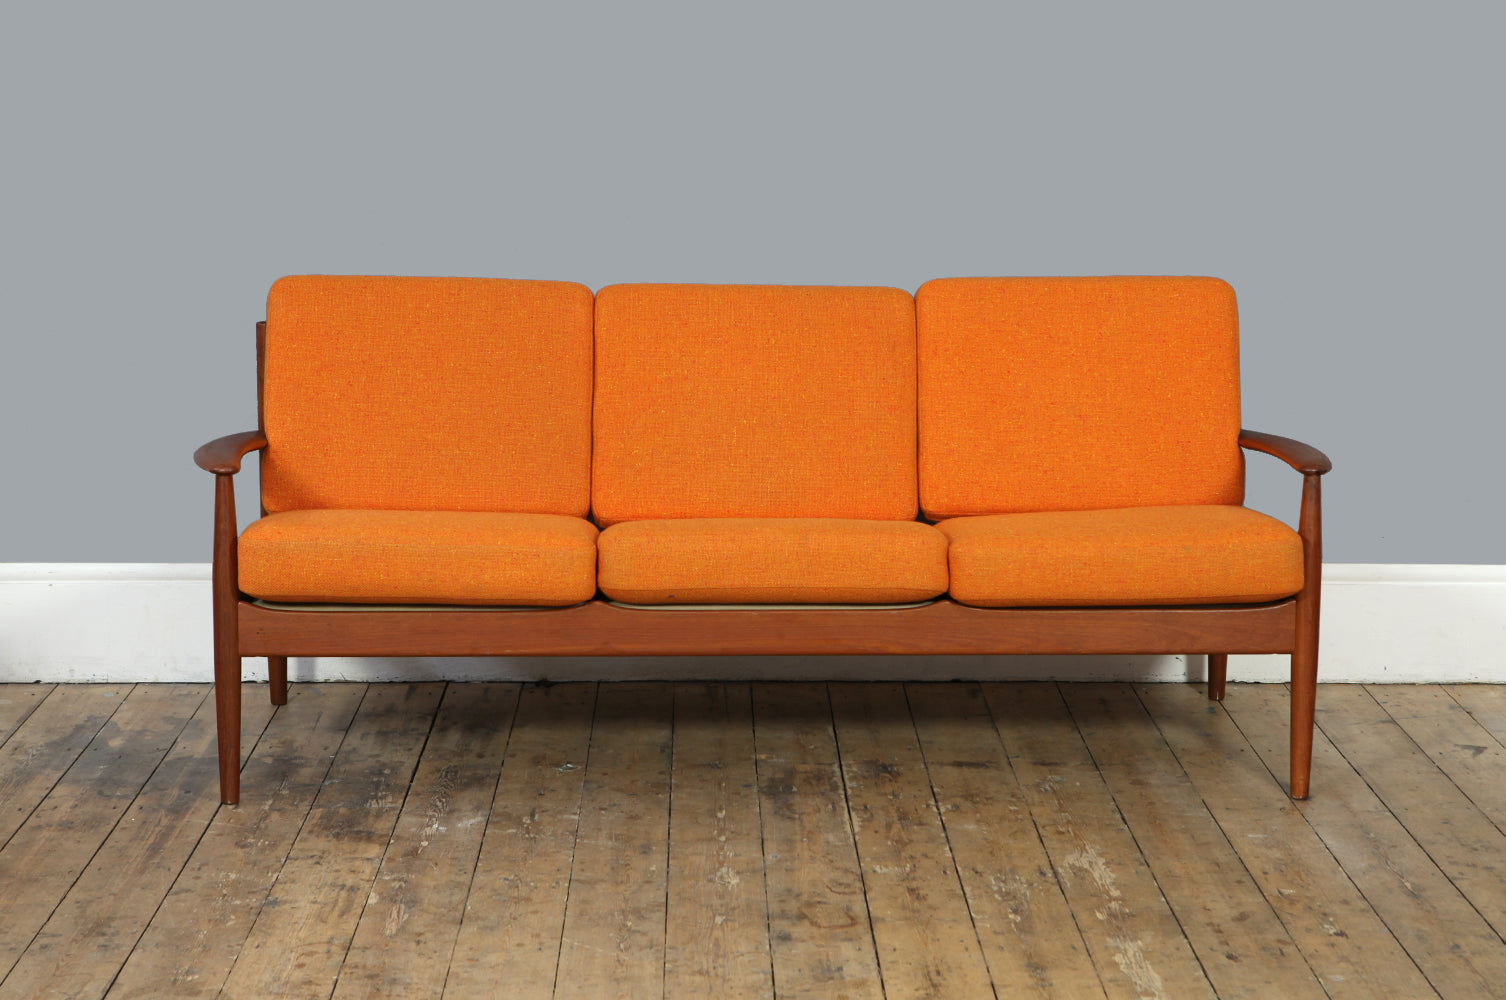 Model 118 Sofa by Grete Jalk - Forest London